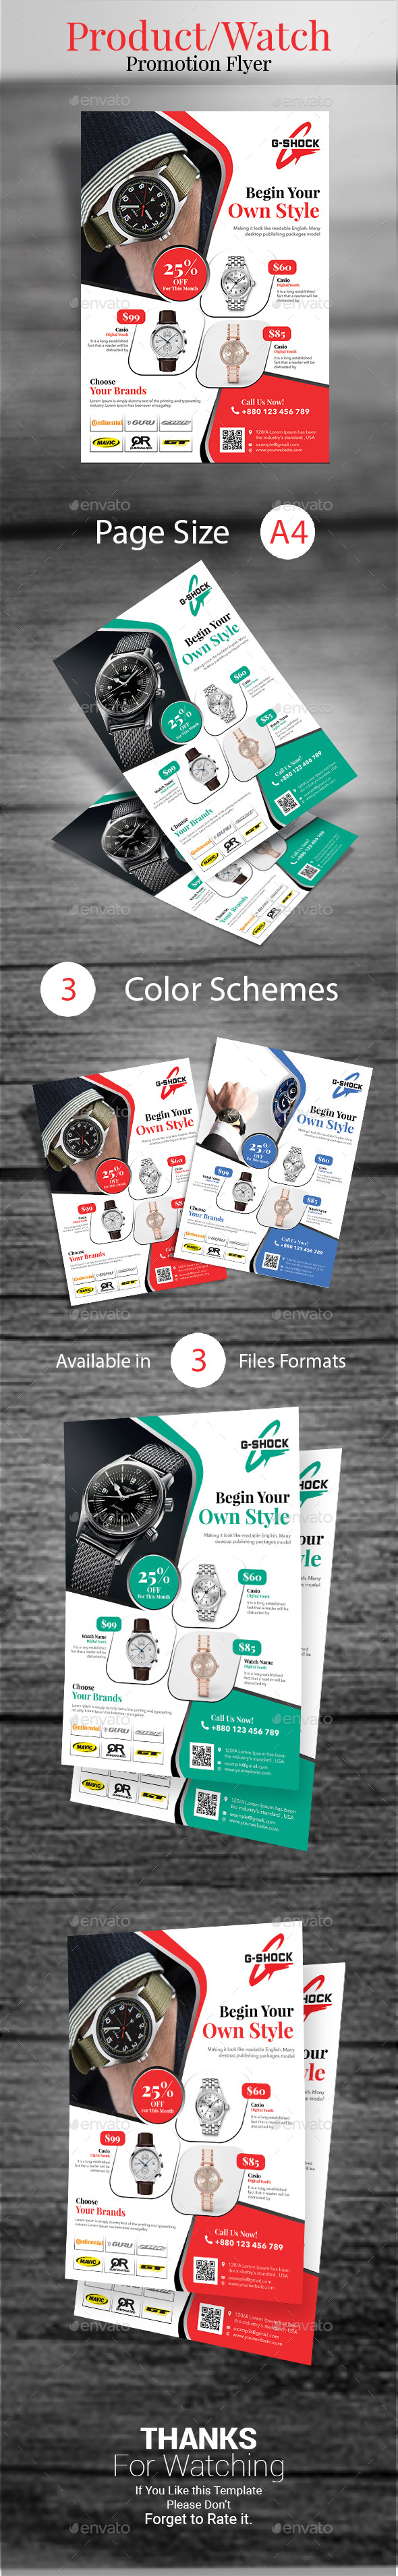 Watch/Product Promotional Flyer - Commerce Flyers